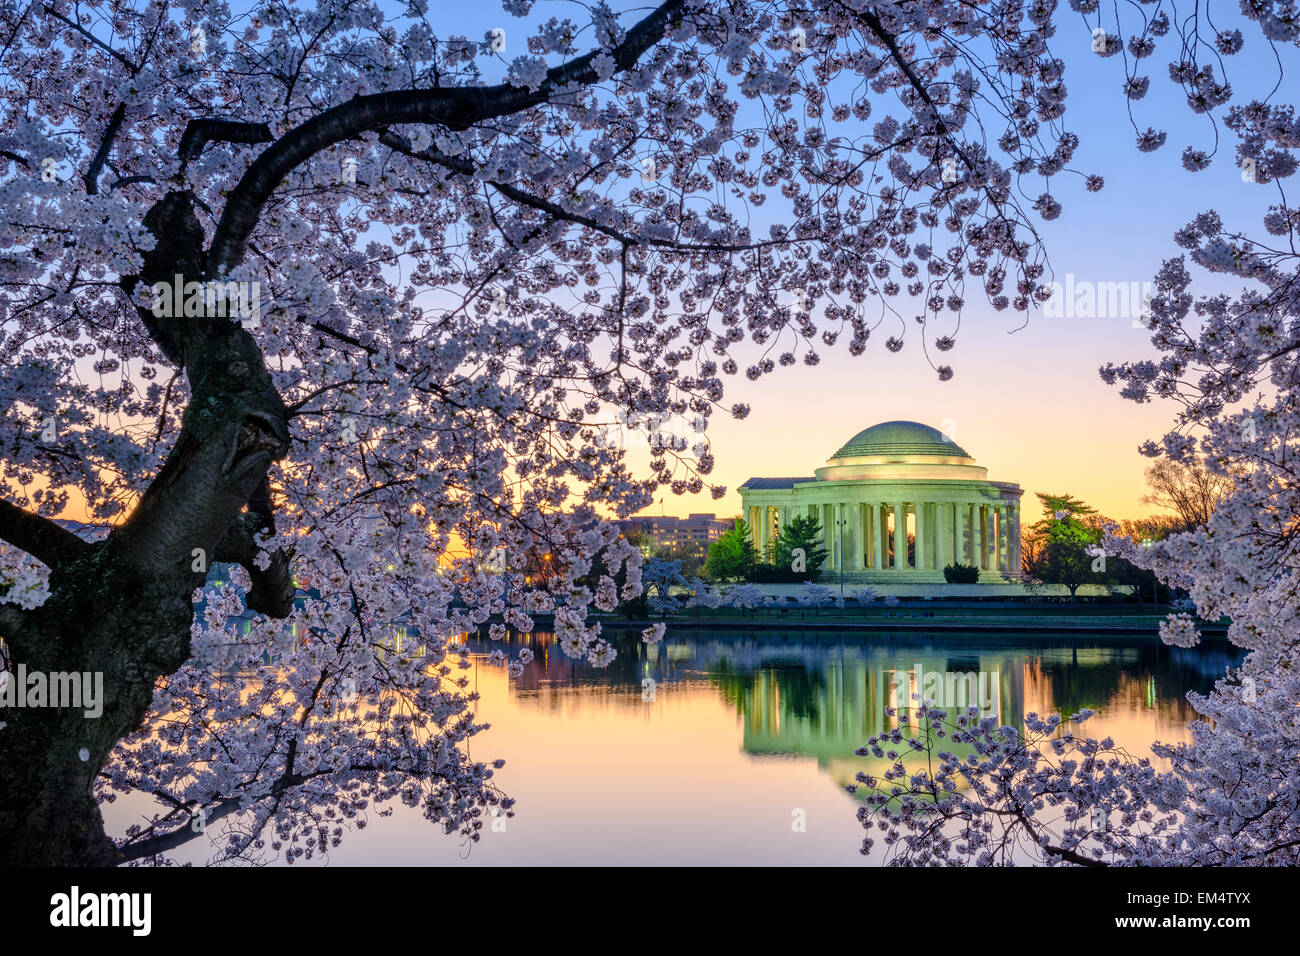 Washington, DC at the Jefferson Memorial during spring. - Stock Image